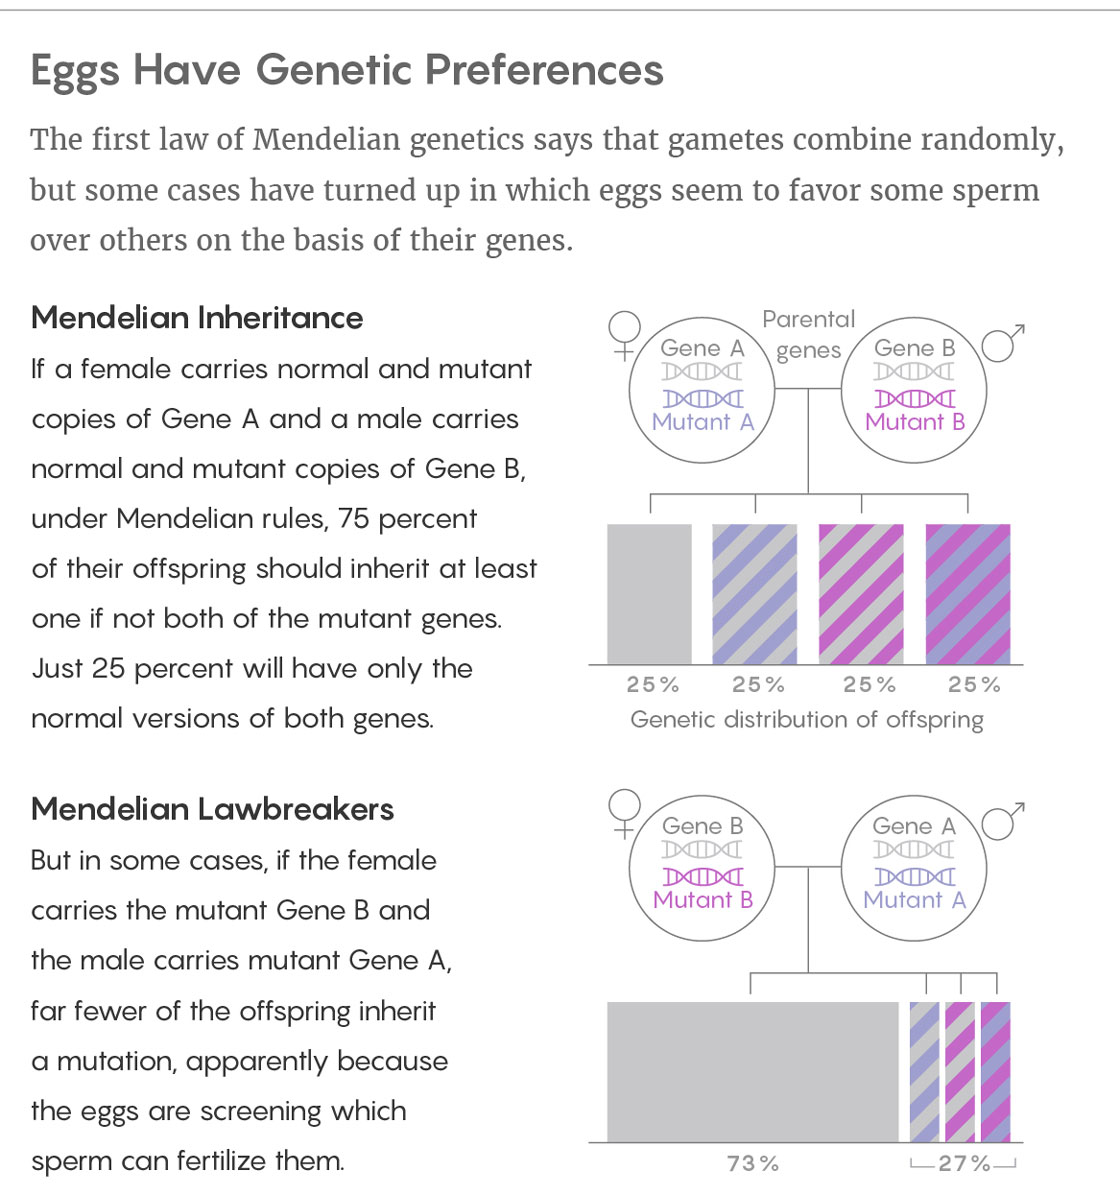 Eggs Have Genetic Preferences The first law of Mendelian genetics says that gametes combine randomly, but some cases have turned up in which eggs seem to favor some sperm over others on the basis of their genes. Mendelian Inheritance If a female carries normal and mutant copies of Gene A and a male carries normal and mutant copies of Gene B, under Mendelian rules, 75 percent of their offspring should inherit at least one if not both of the mutant genes. Just 25 percent will have only the normal versions of both genes. Mendelian Lawbreakers But in some cases, if the female carries the mutant Gene B and the male carries mutant Gene A, far fewer of the offspring inherit a mutation, apparently because the eggs are screening which sperm can fertilize them.